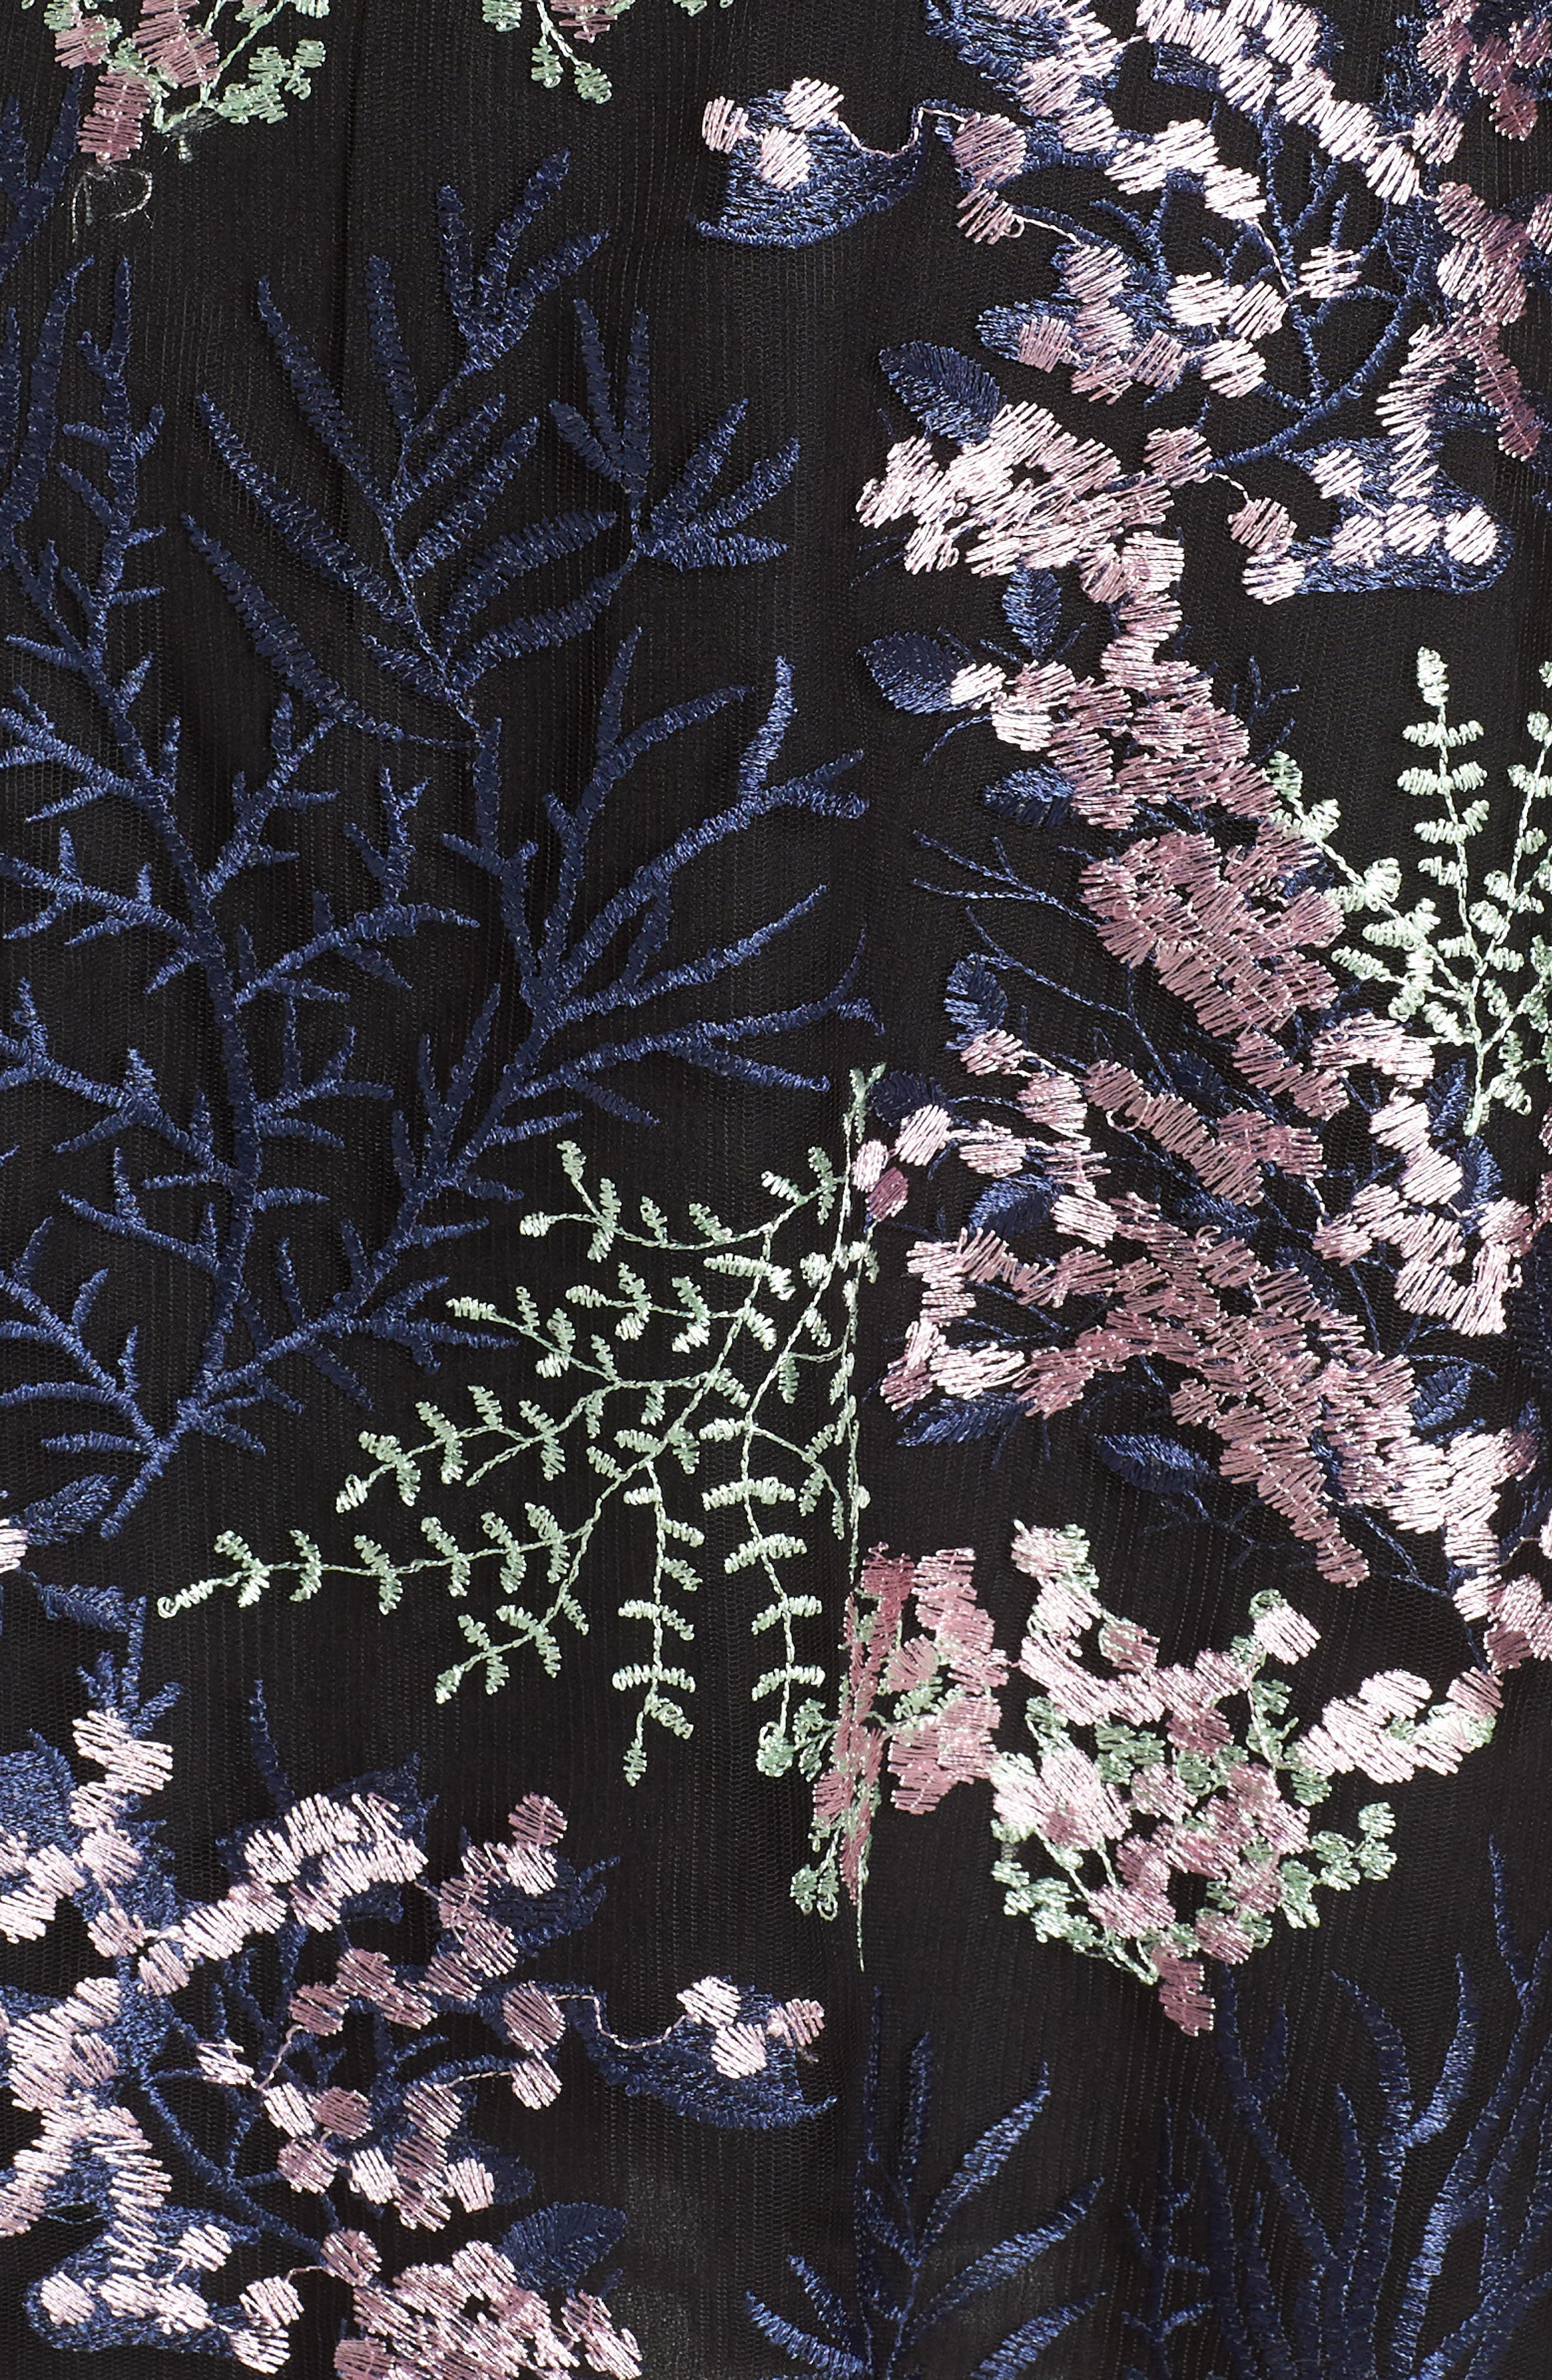 Embroidered Lace A-Line Dress,                             Alternate thumbnail 6, color,                             BLACK FLOWY FLORAL